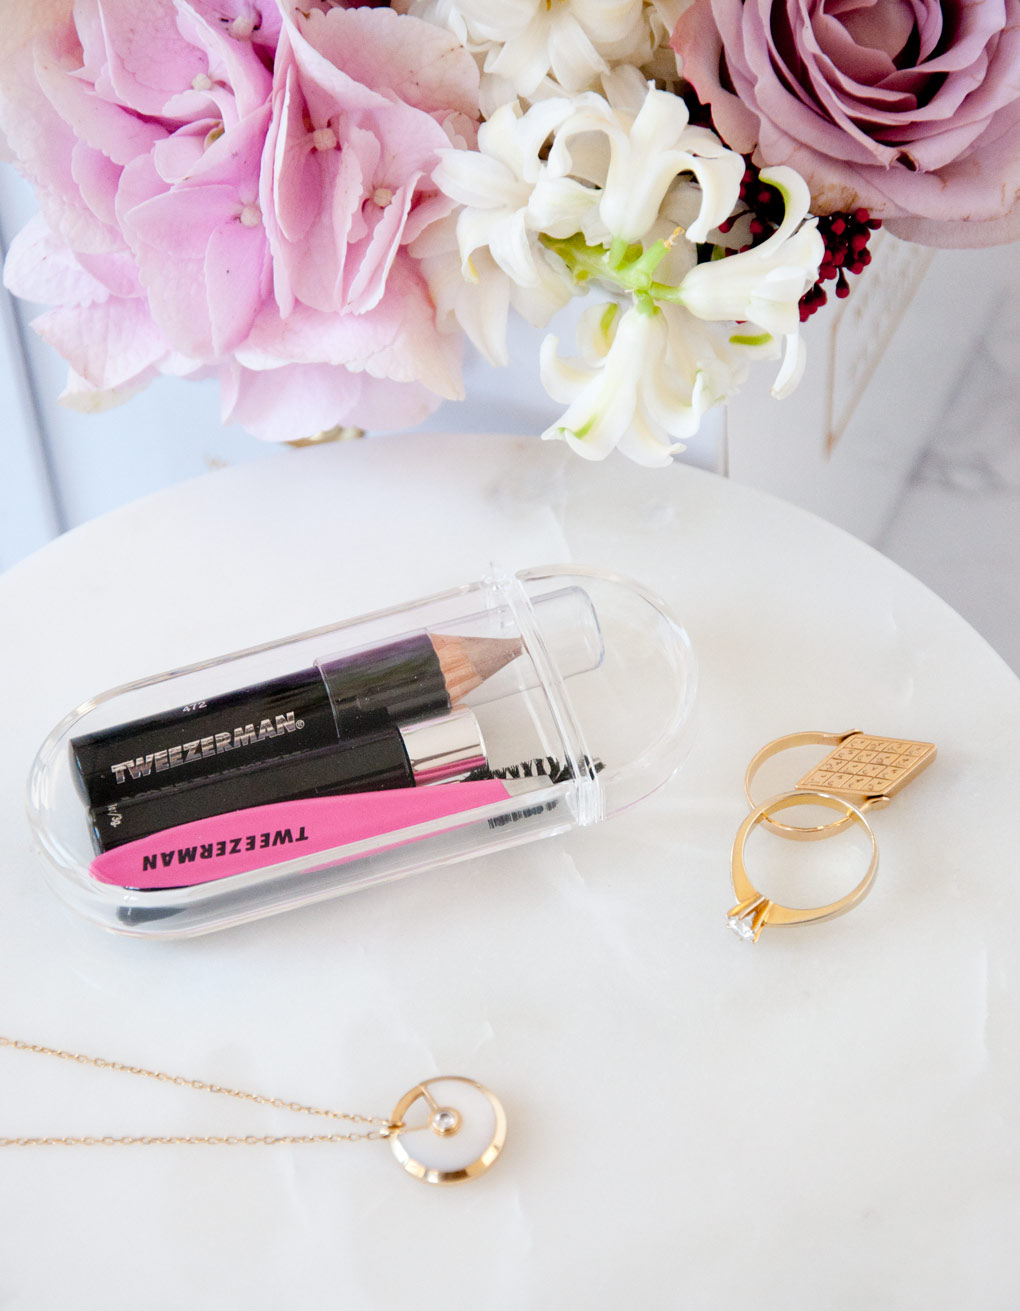 Lyla_Loves_Fashion_Tweezermans_mini_brow_rescue_kit_4526